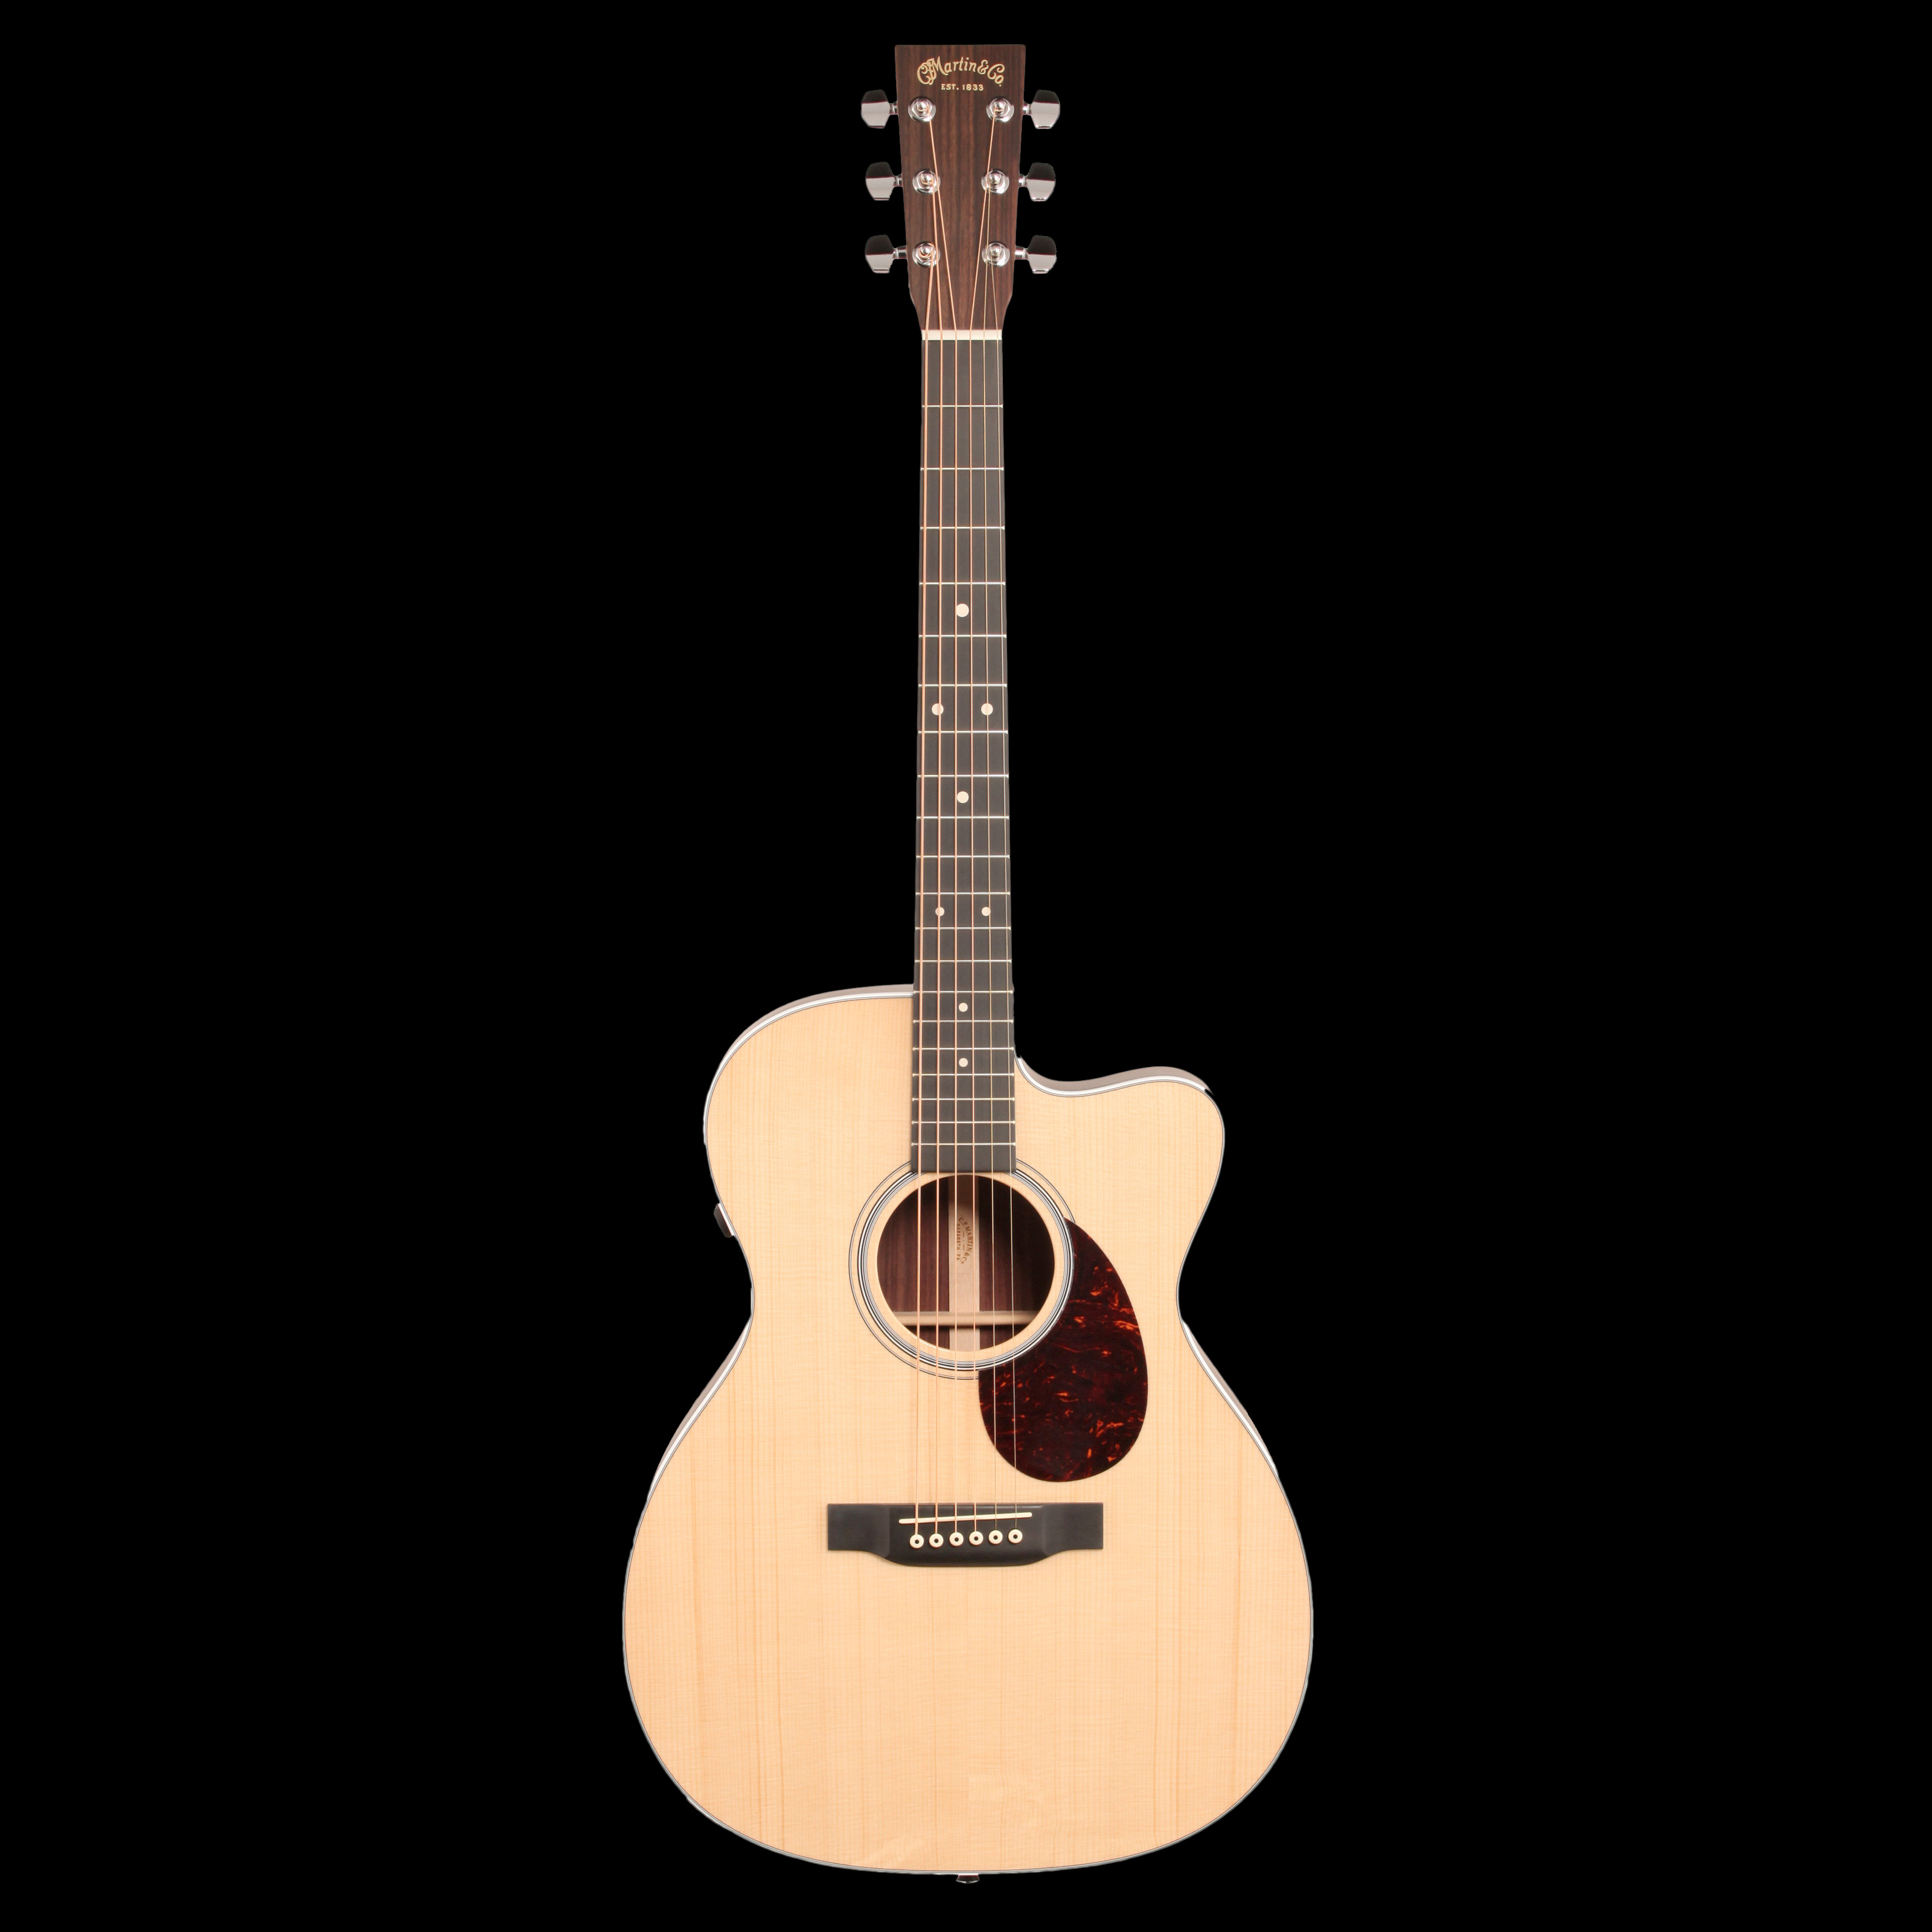 martin omcpa4 performing artist series acoustic electric guitar 729789403351 ebay. Black Bedroom Furniture Sets. Home Design Ideas